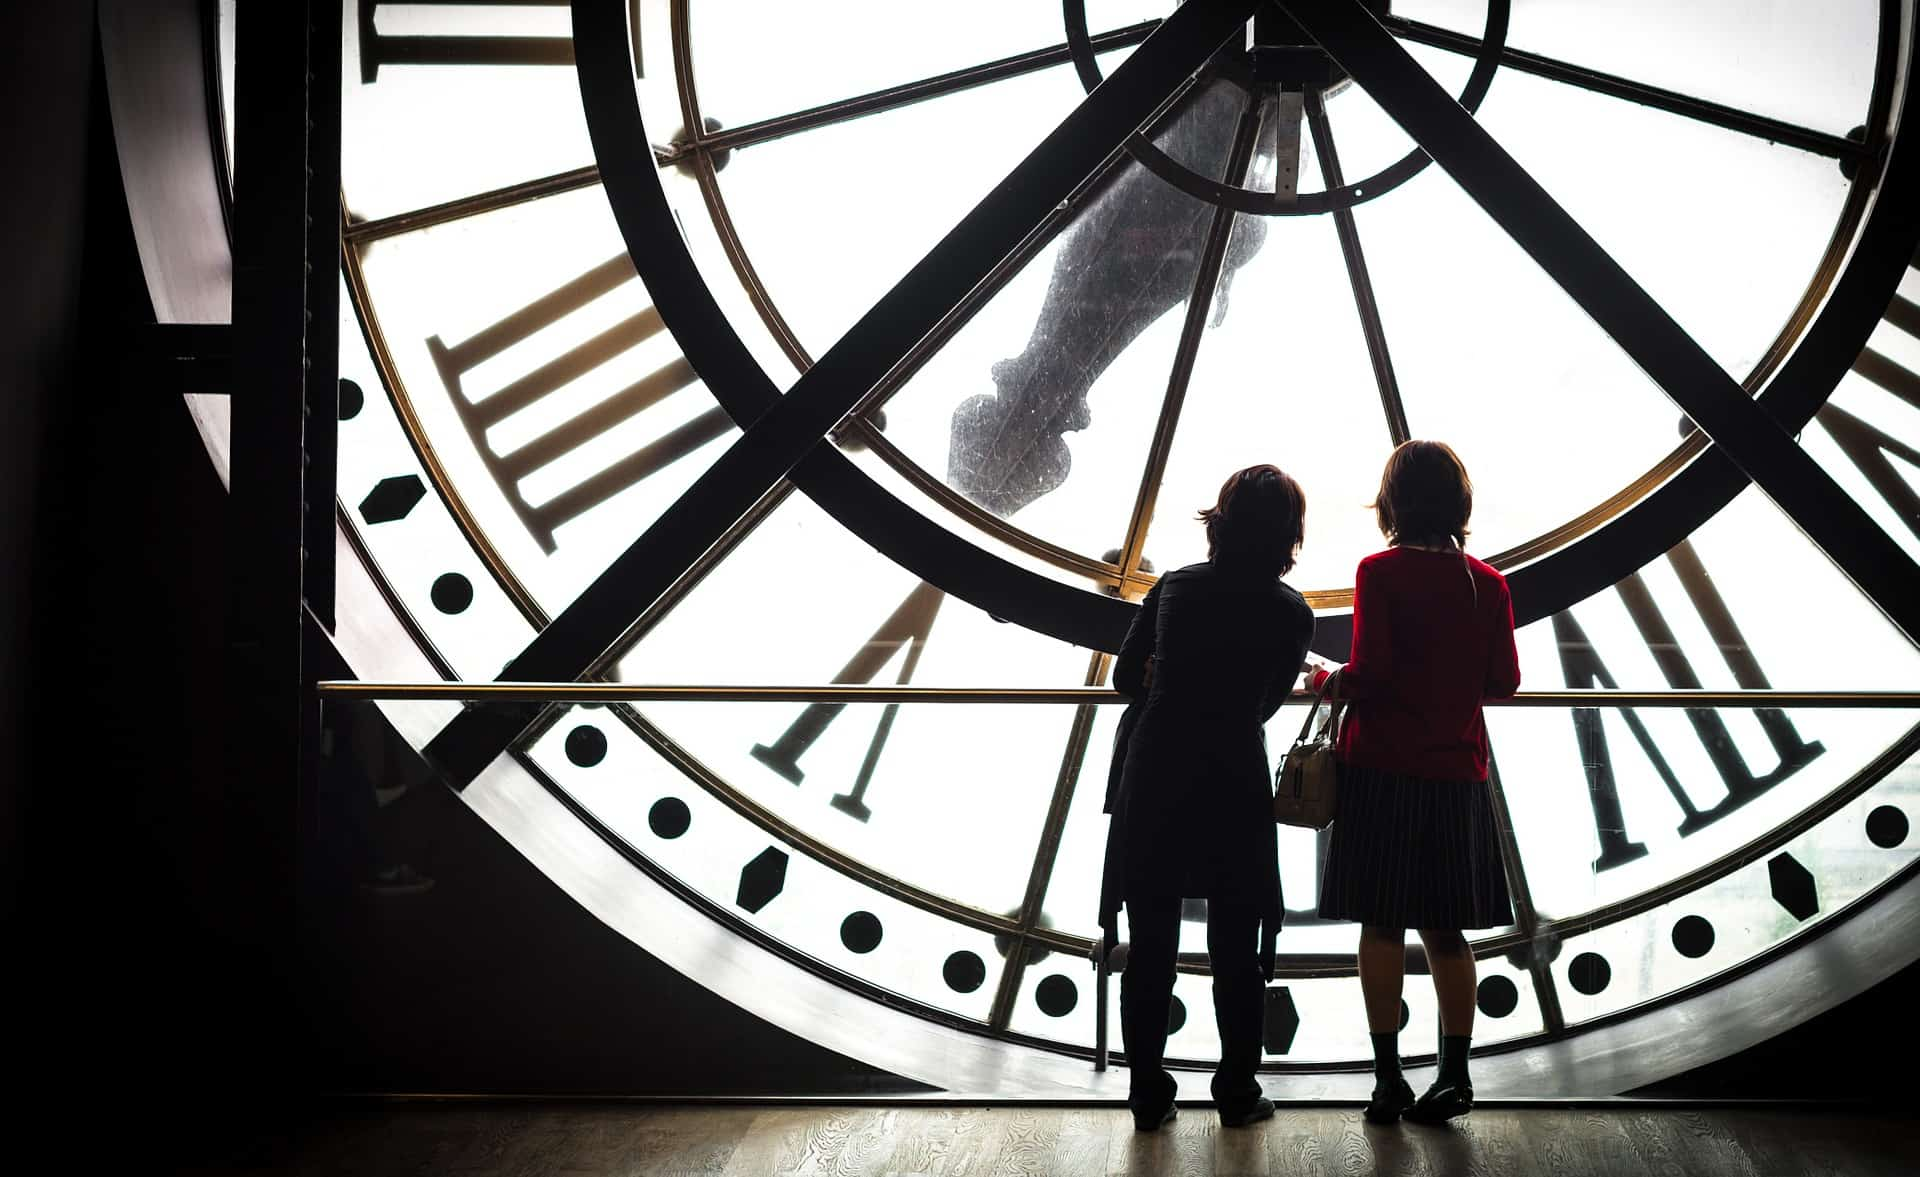 the view through the old clock in the Musée d'Orsay - find the best family hotel in Paris with the knowledge of a local